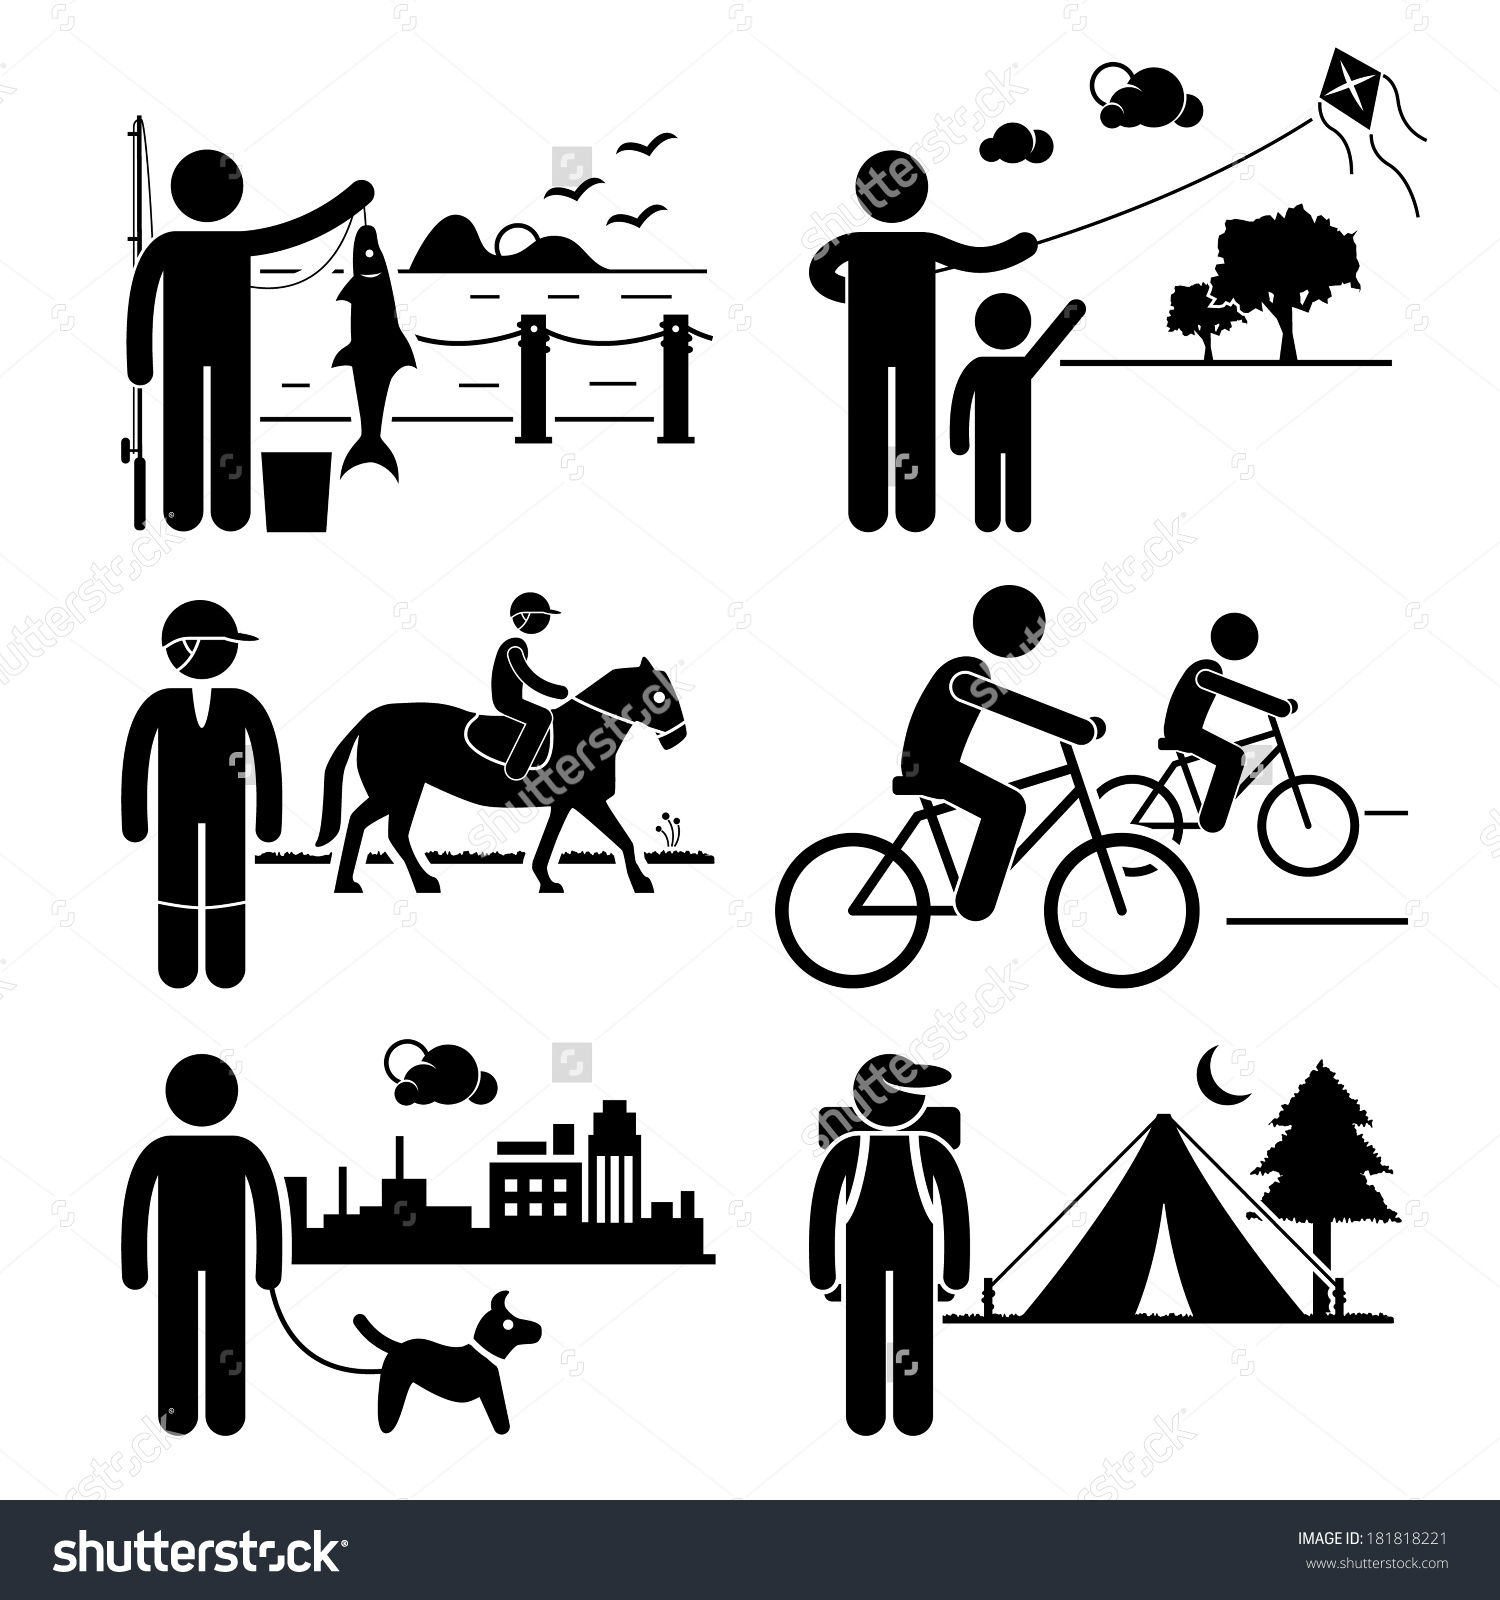 Recreation And Leisure Clipart.